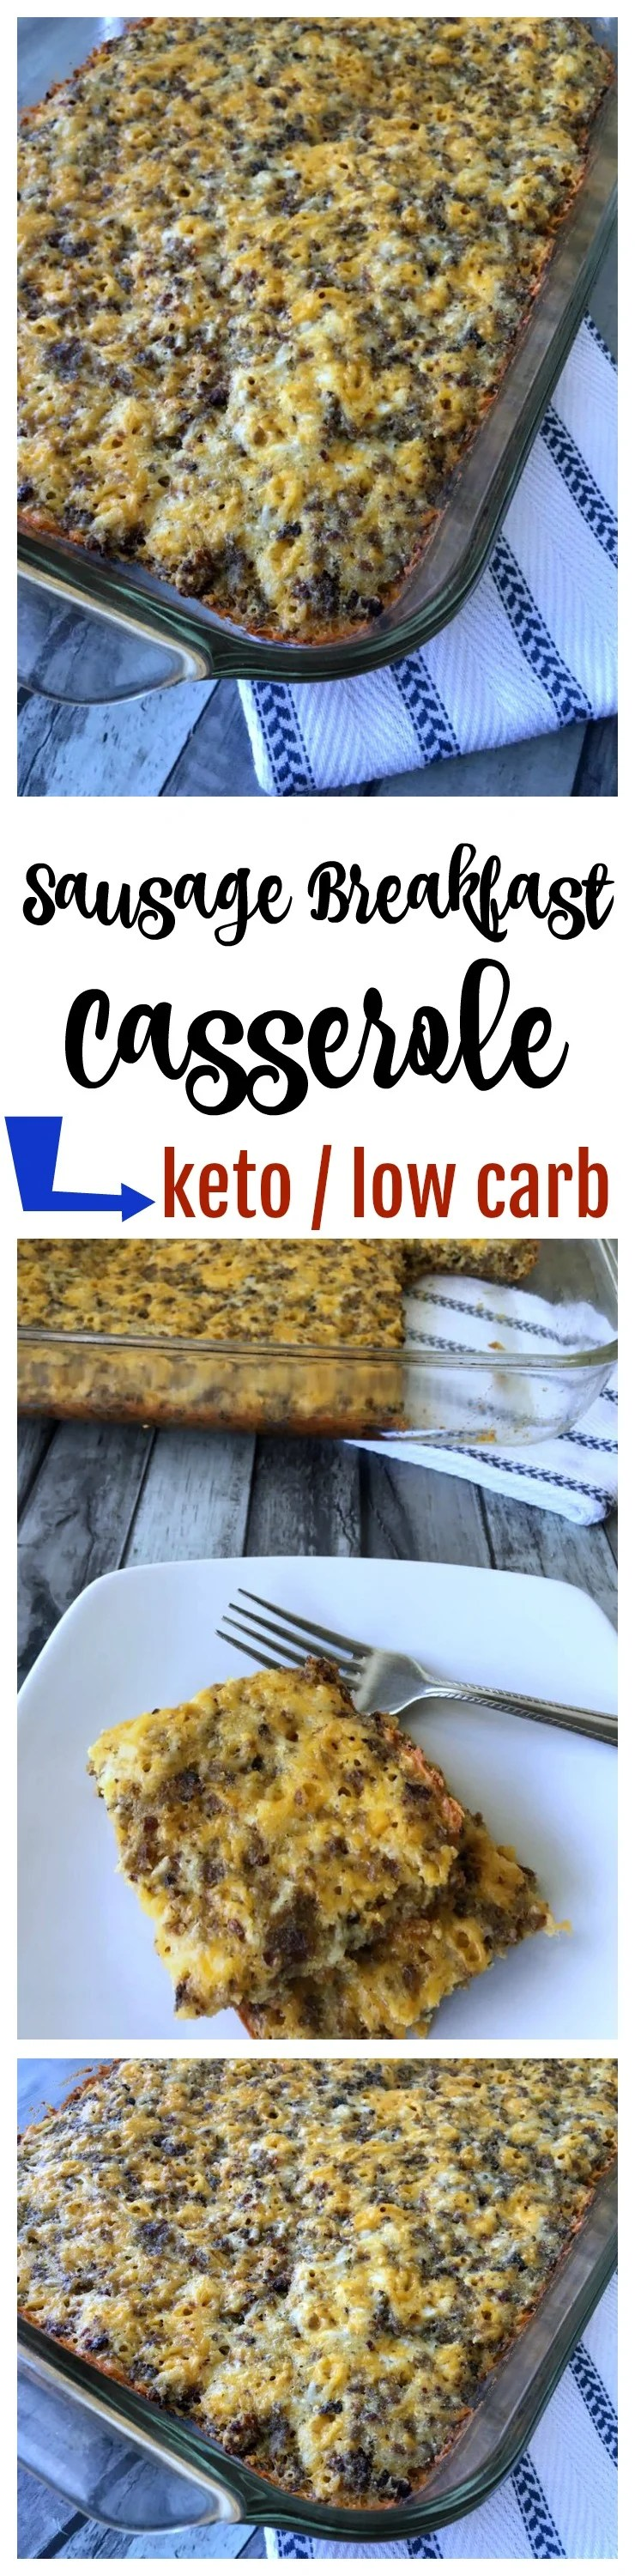 Make this delicious Keto Breakfast Casserole with sausage as a perfect prep ahead meal! Easy breakfast recipes like this are ideal for low carb diets and the ketogenic diet lifestyle! Add this to your keto menu plan today!